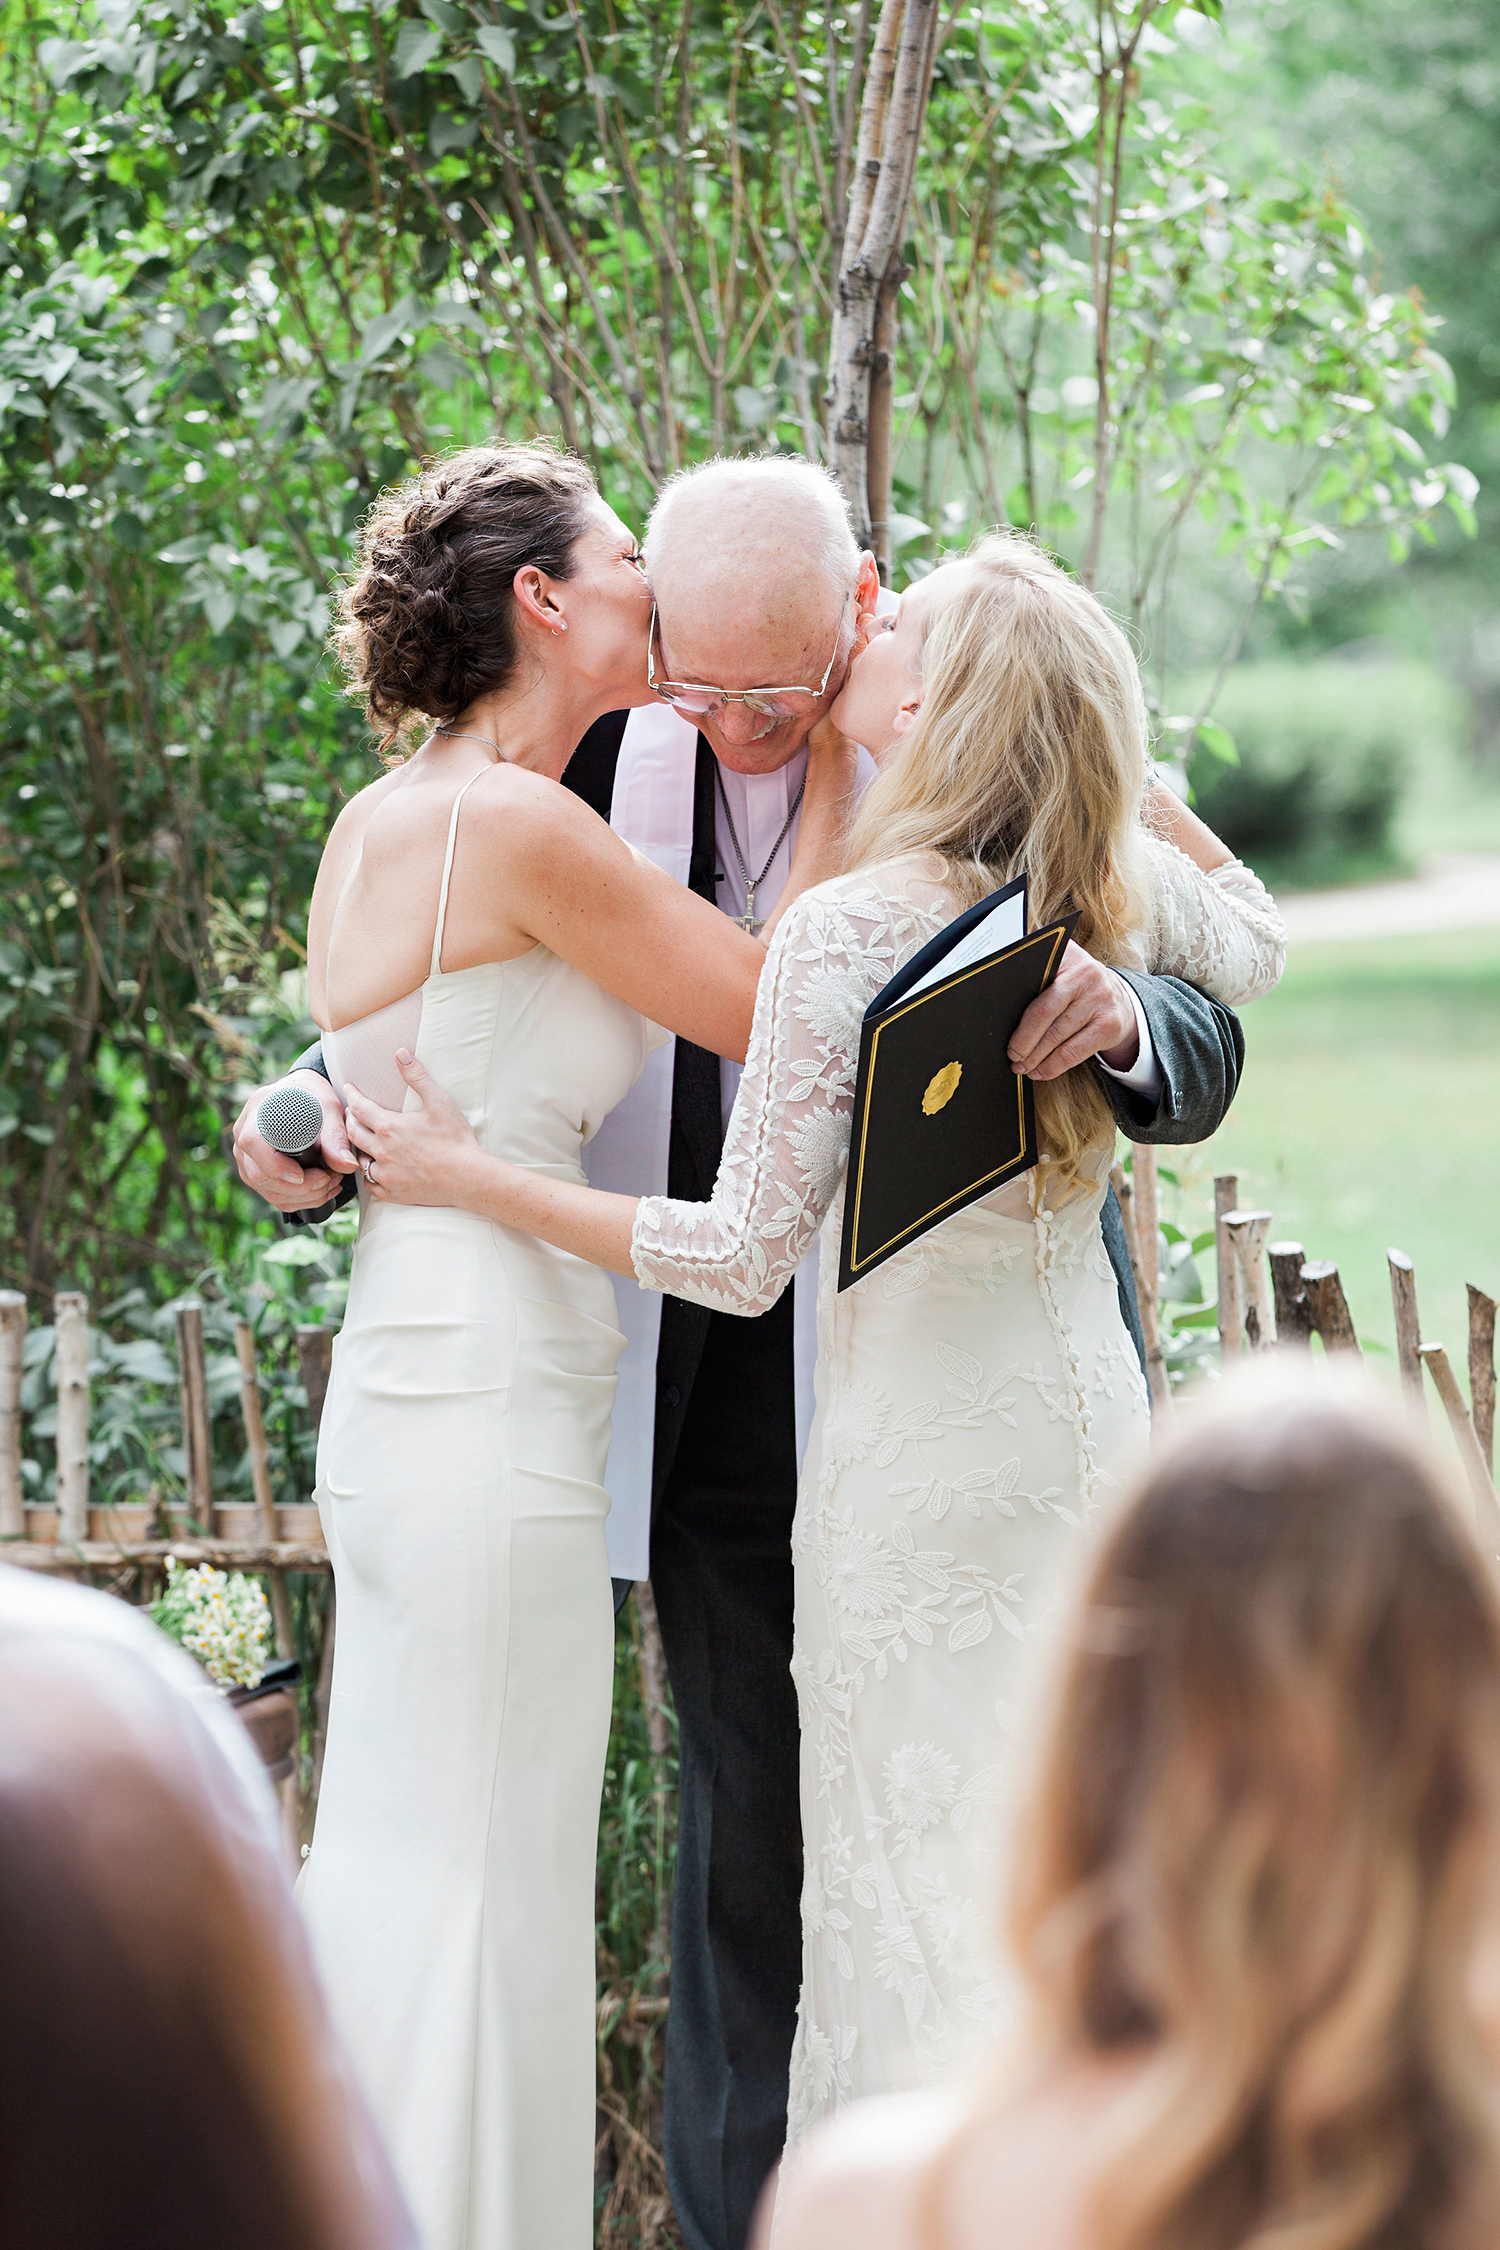 A Loving Officiant